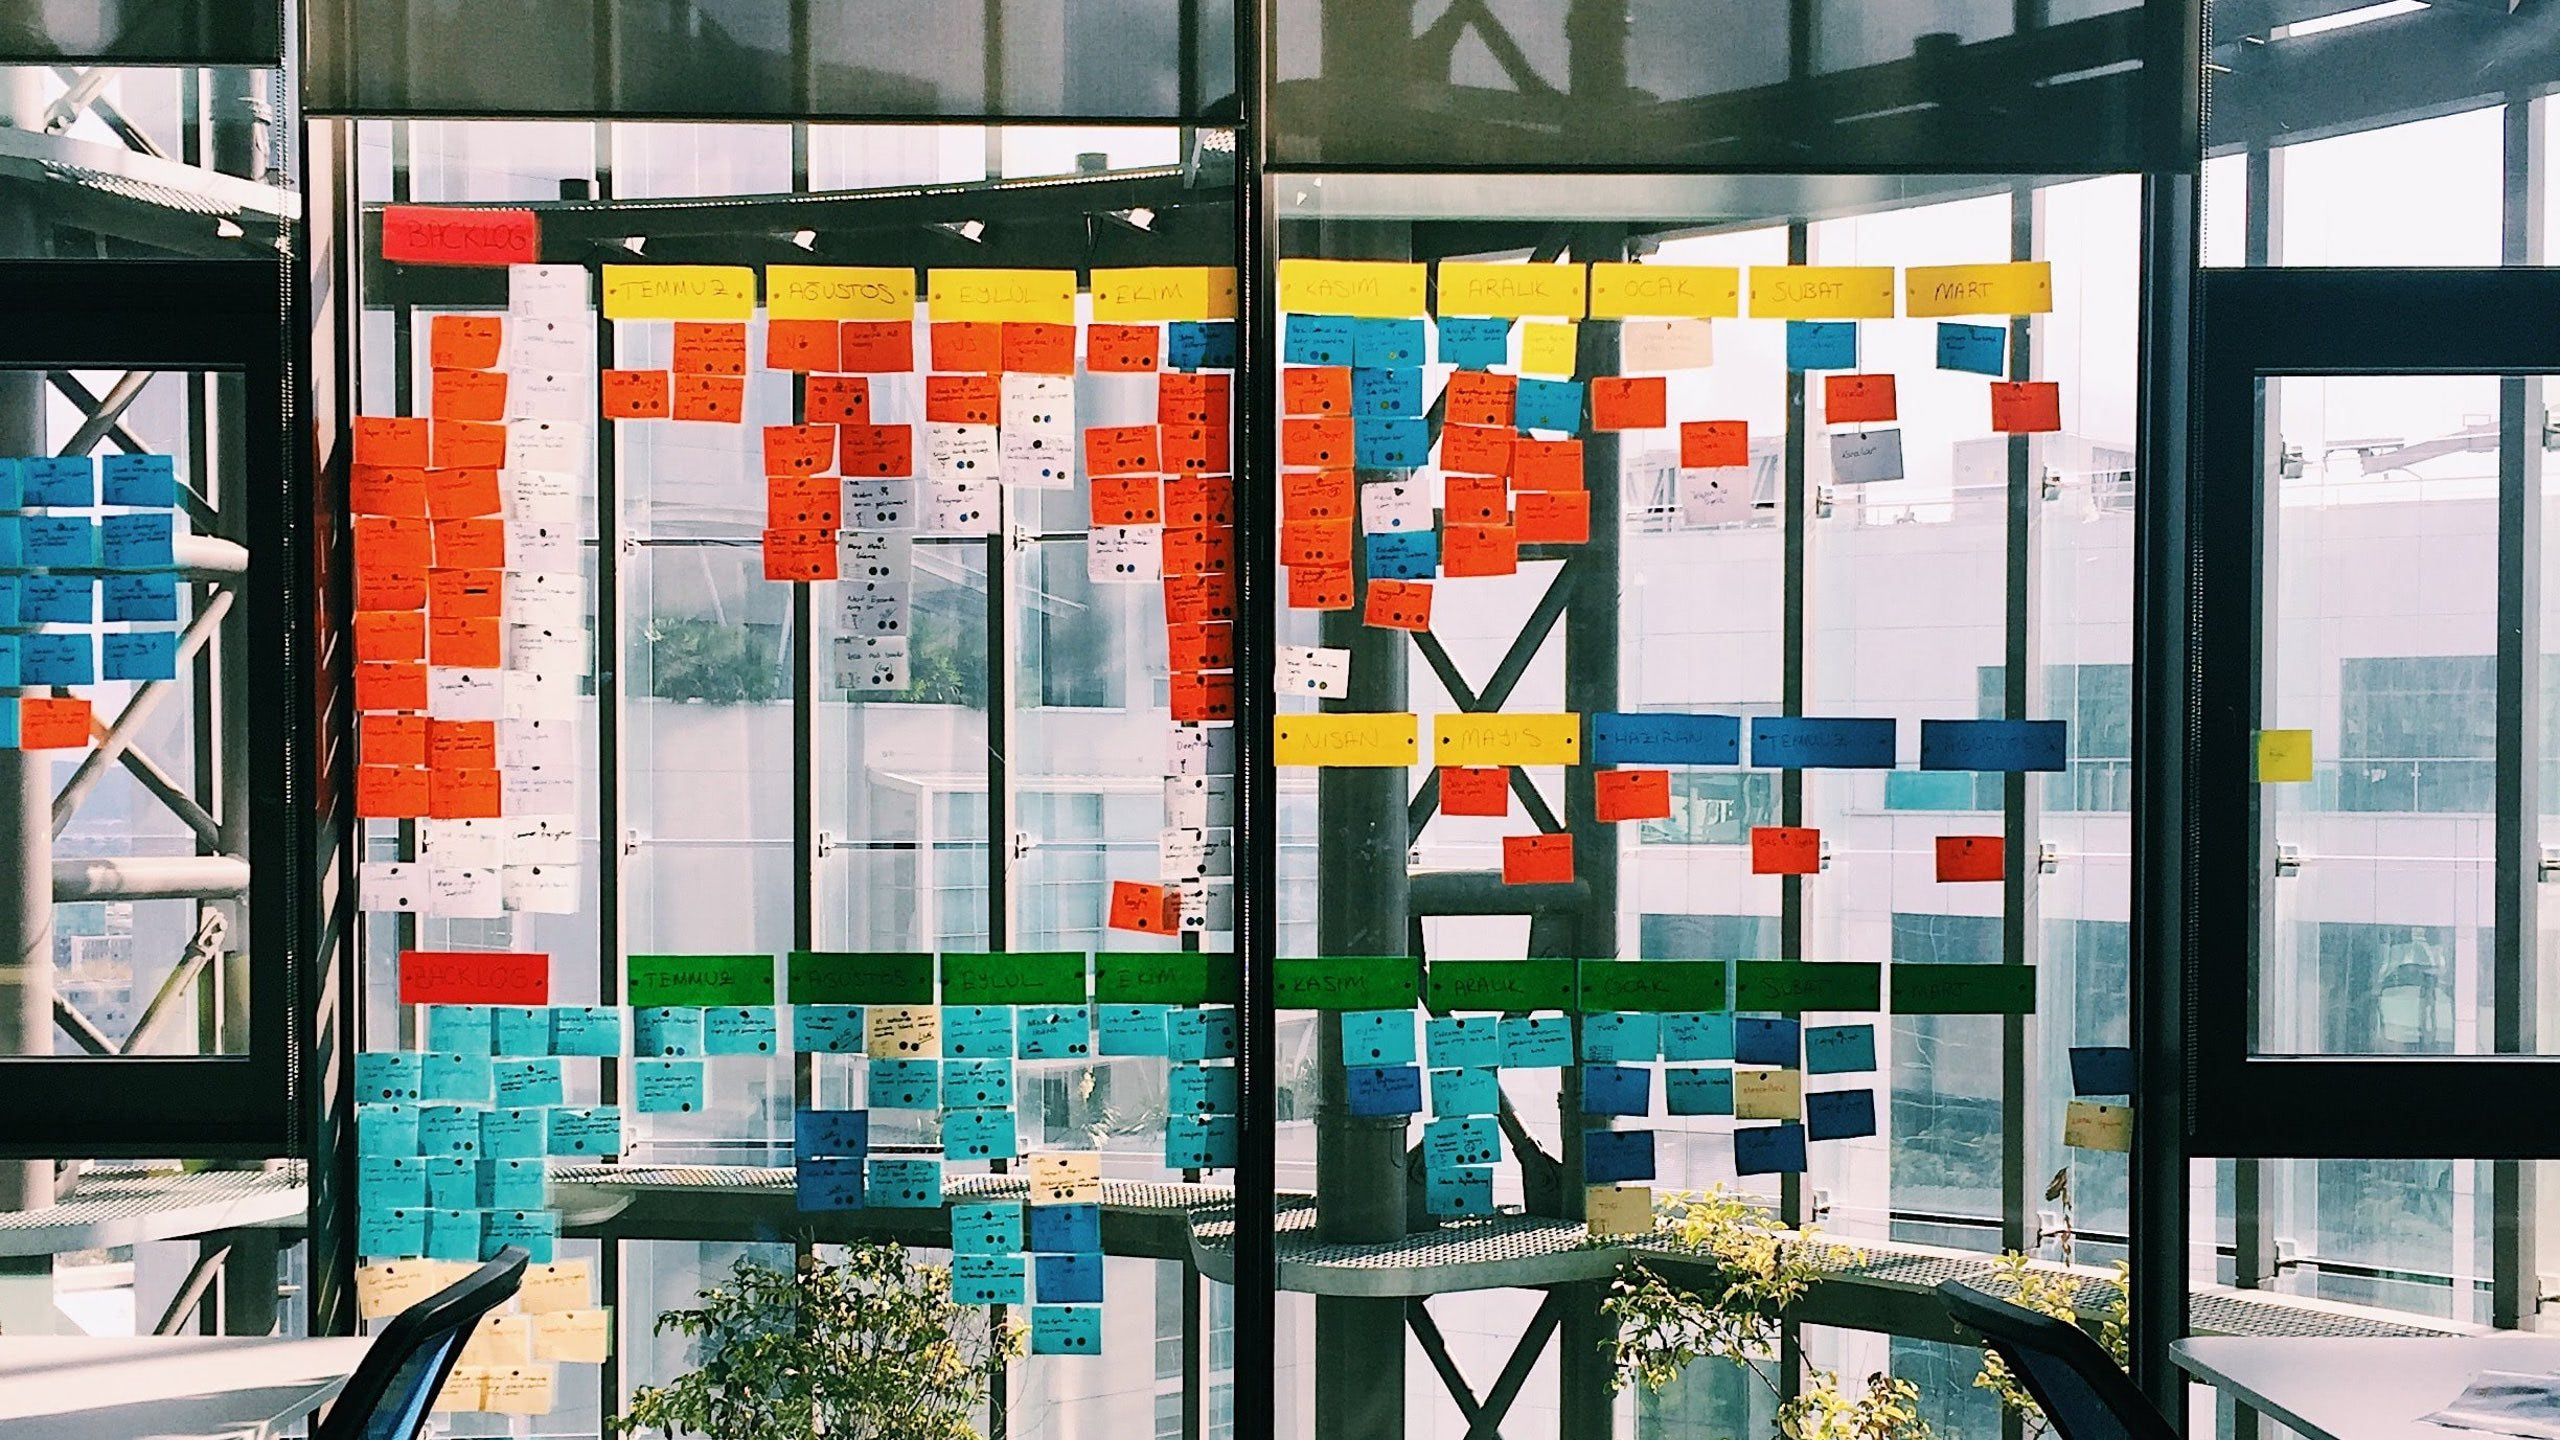 Various coloured post-it notes on an office building window